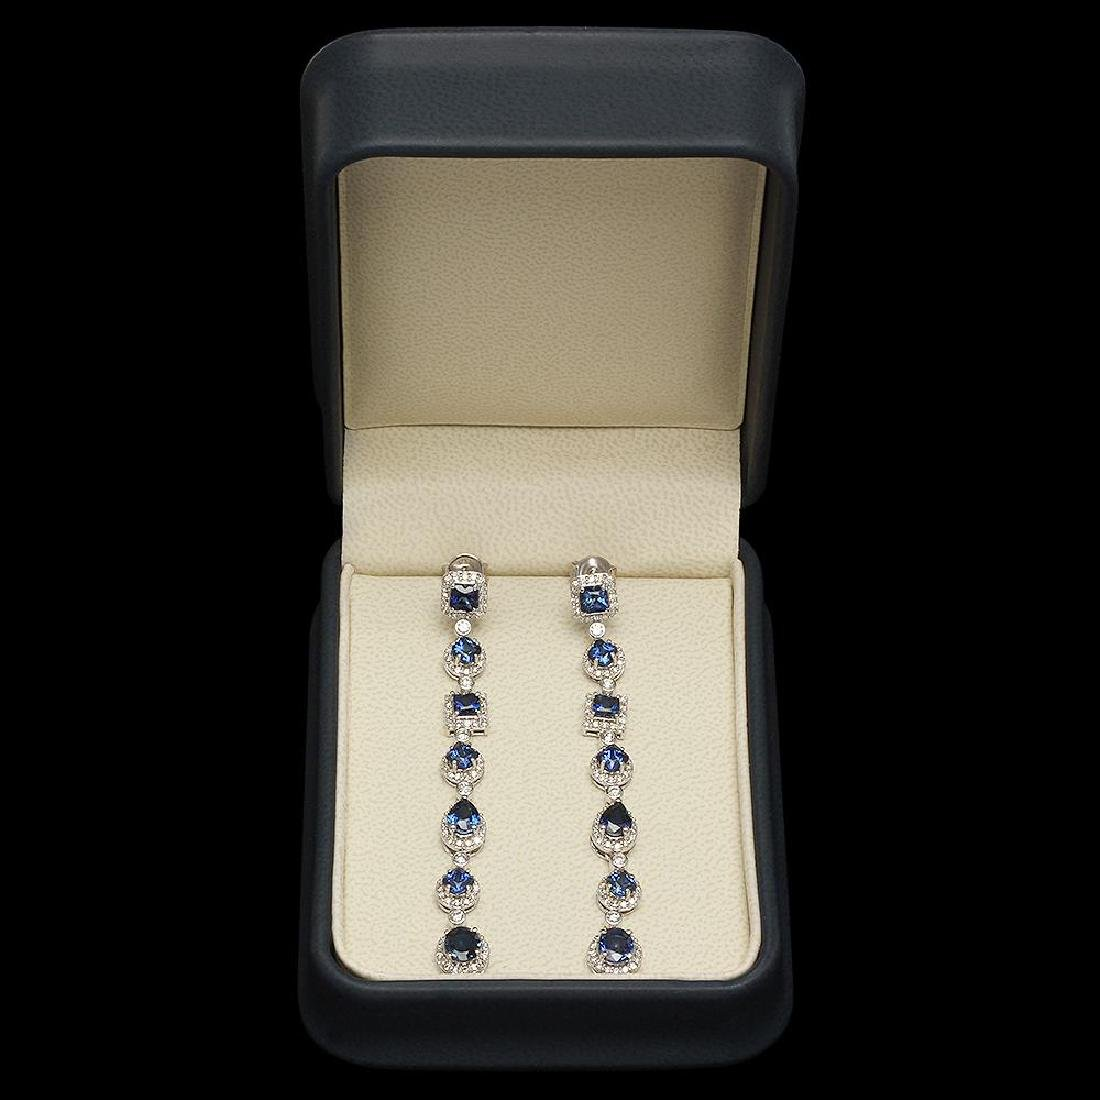 18K Gold 6.39ct Sapphire 2.87ct Diamond Earrings - 3